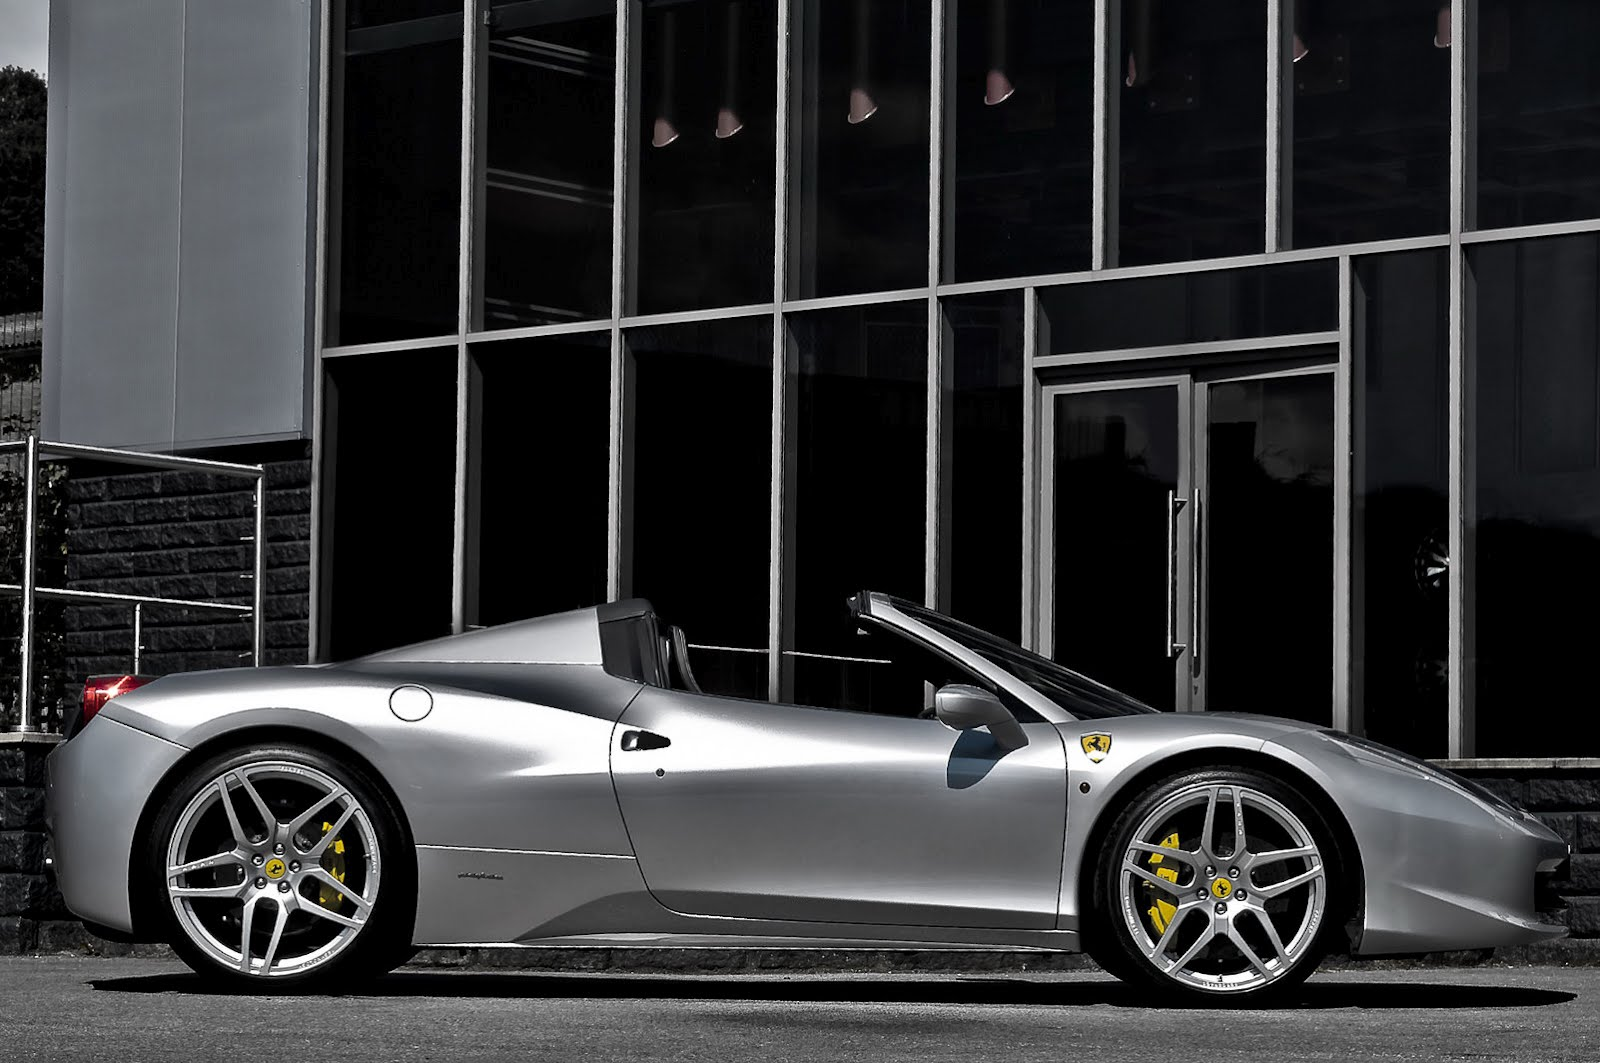 Kahn Design's take on Ferrari 458 Italia Spider